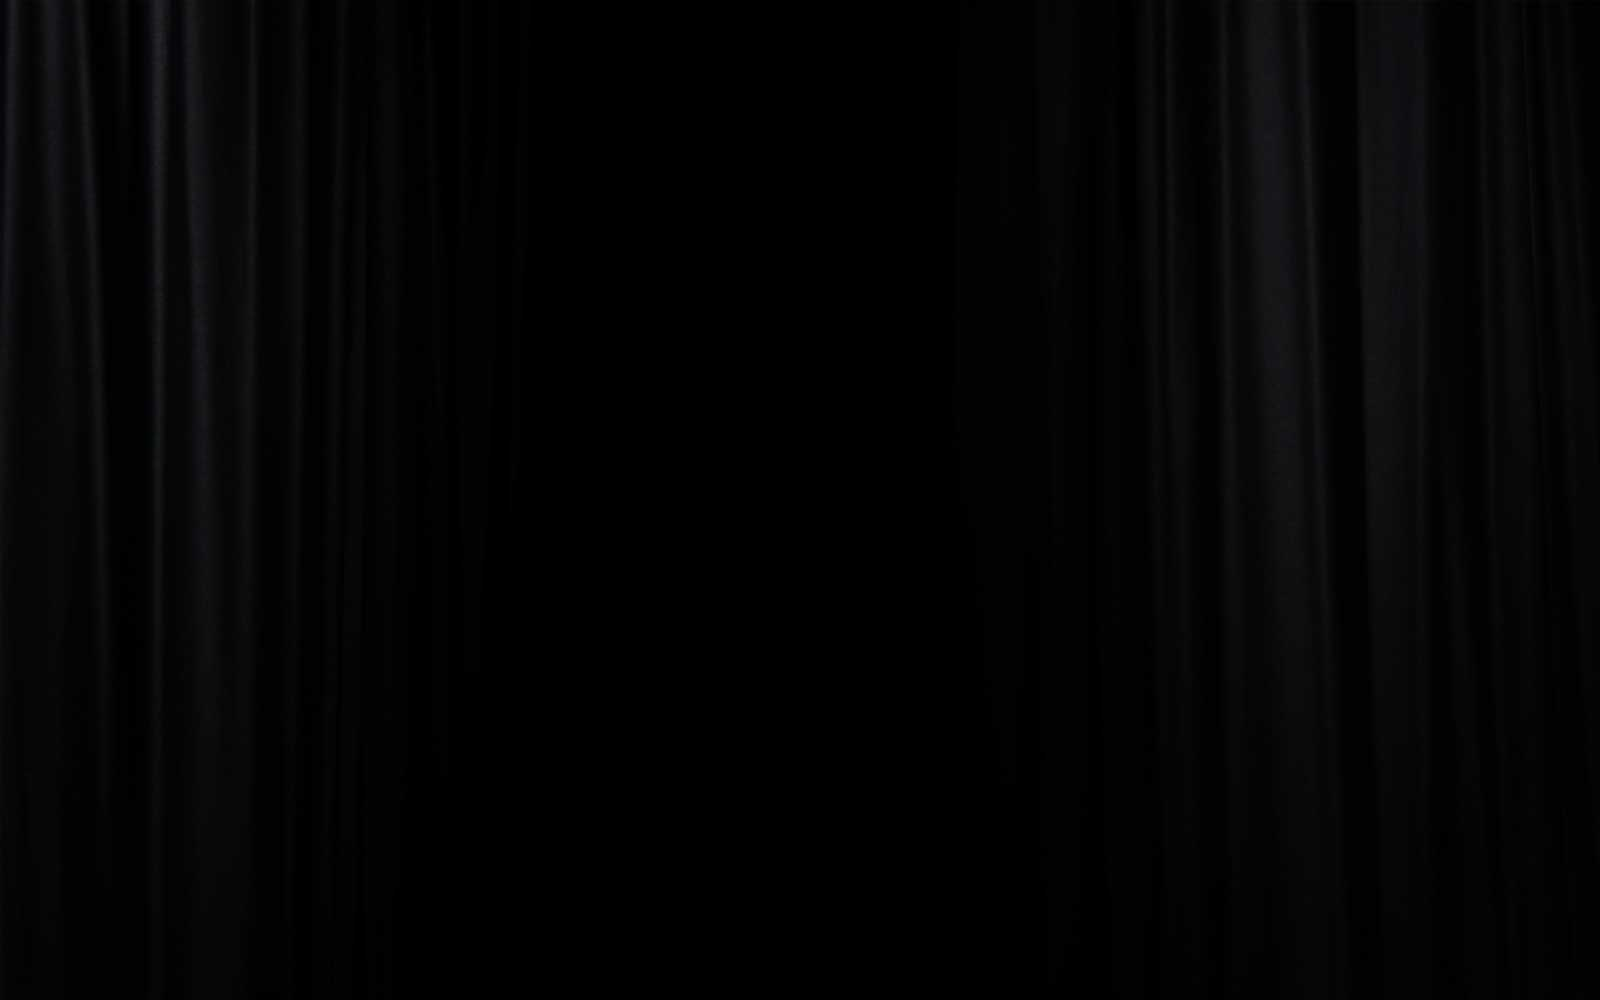 background_black_curtain_open